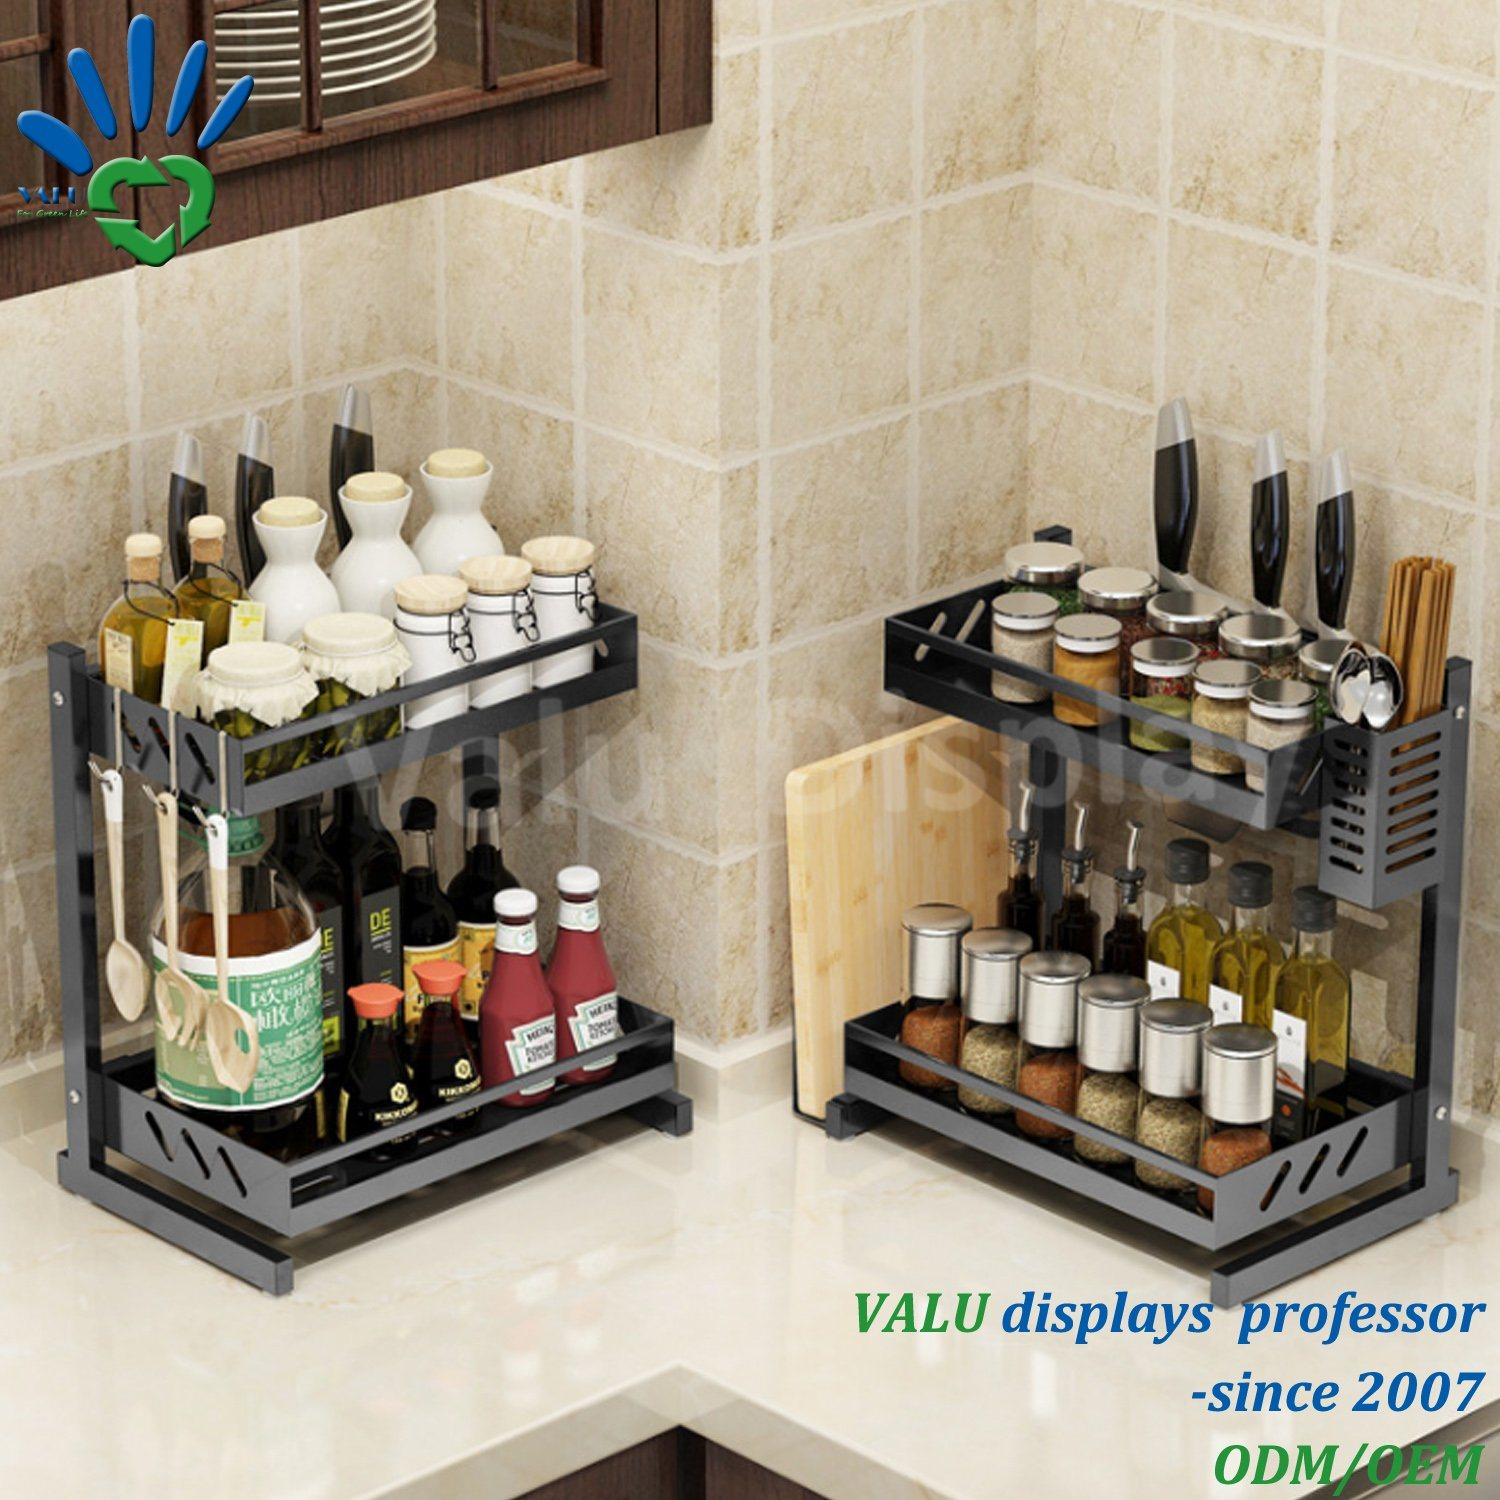 China 2-Tier Kitchen Spice Rack Organizer, Standing Rack ...